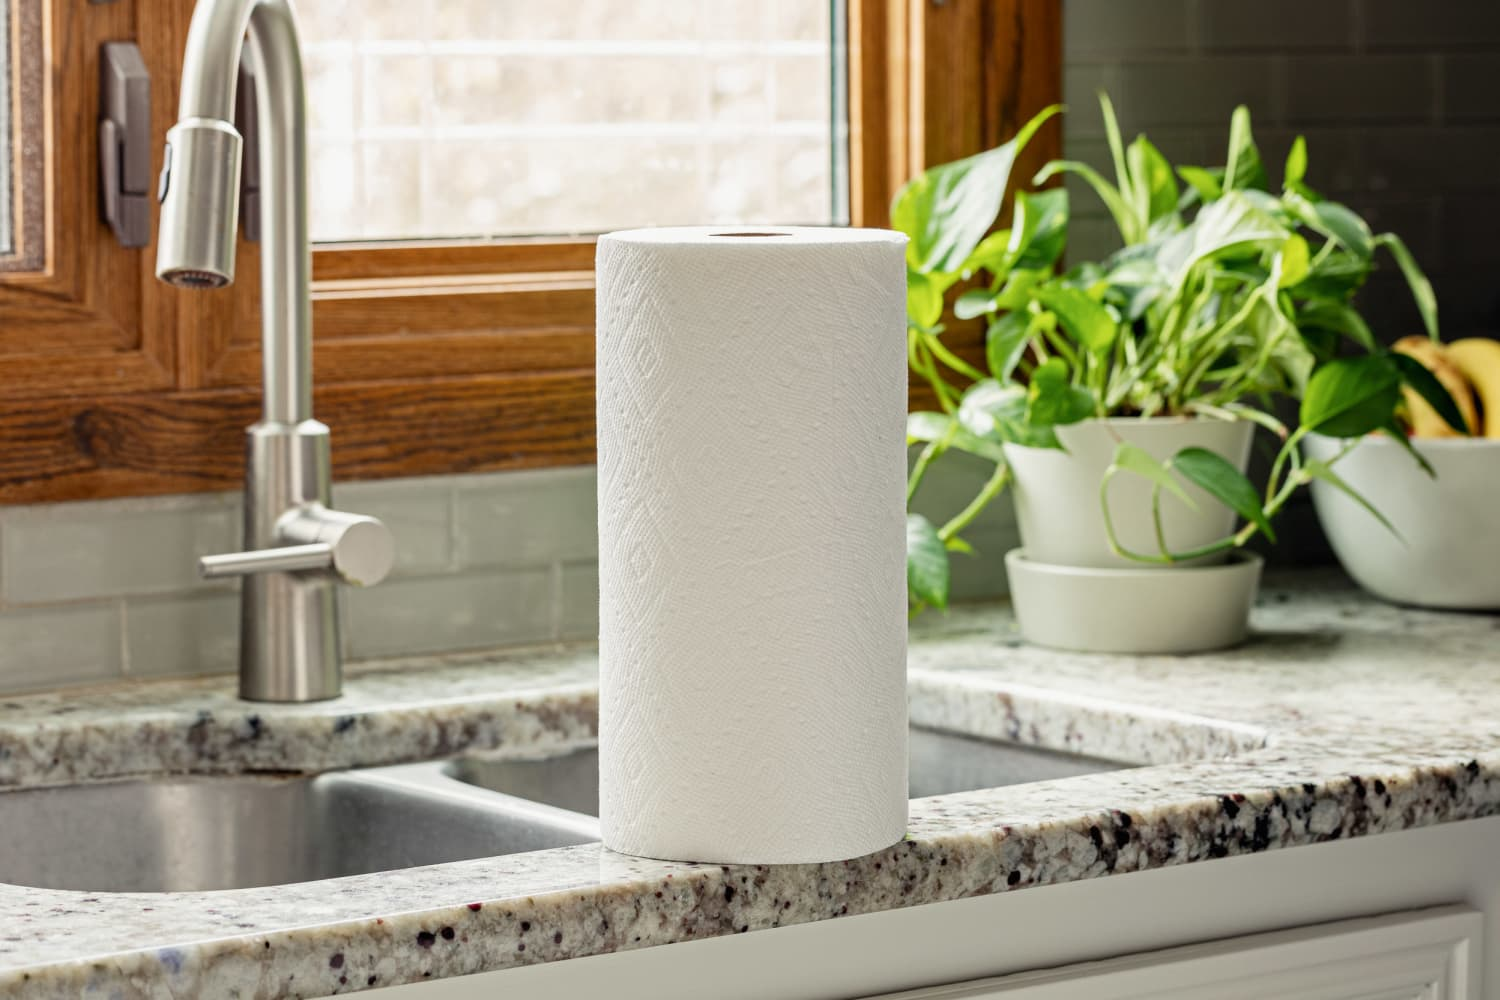 The Brilliant Paper Towel Storage Idea That Everyone Needs to See